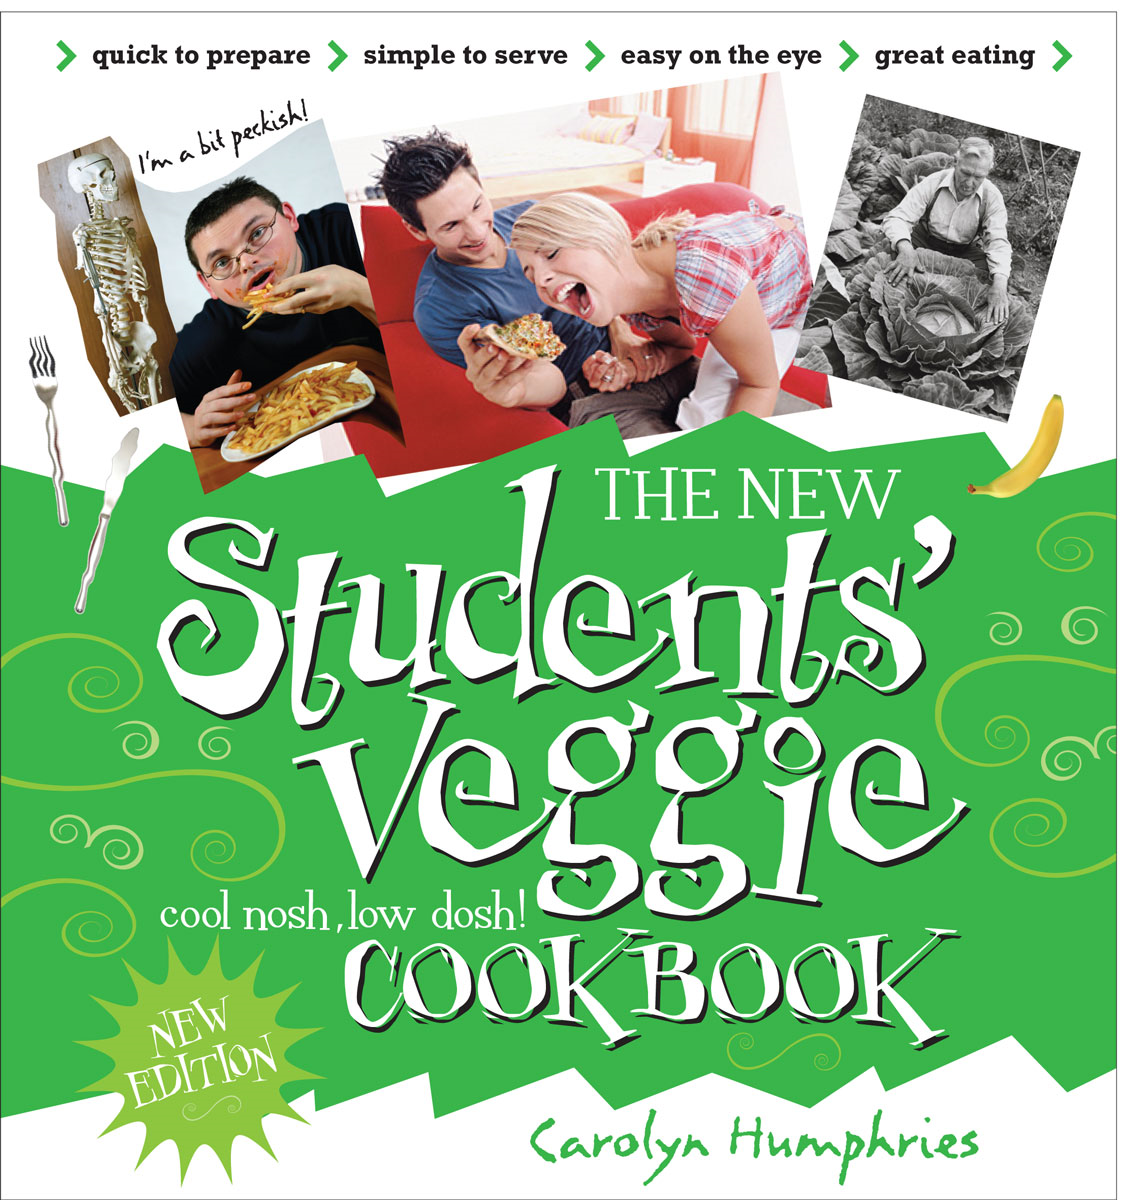 New Students Veggie Cook Book By: Carolyn Humphries